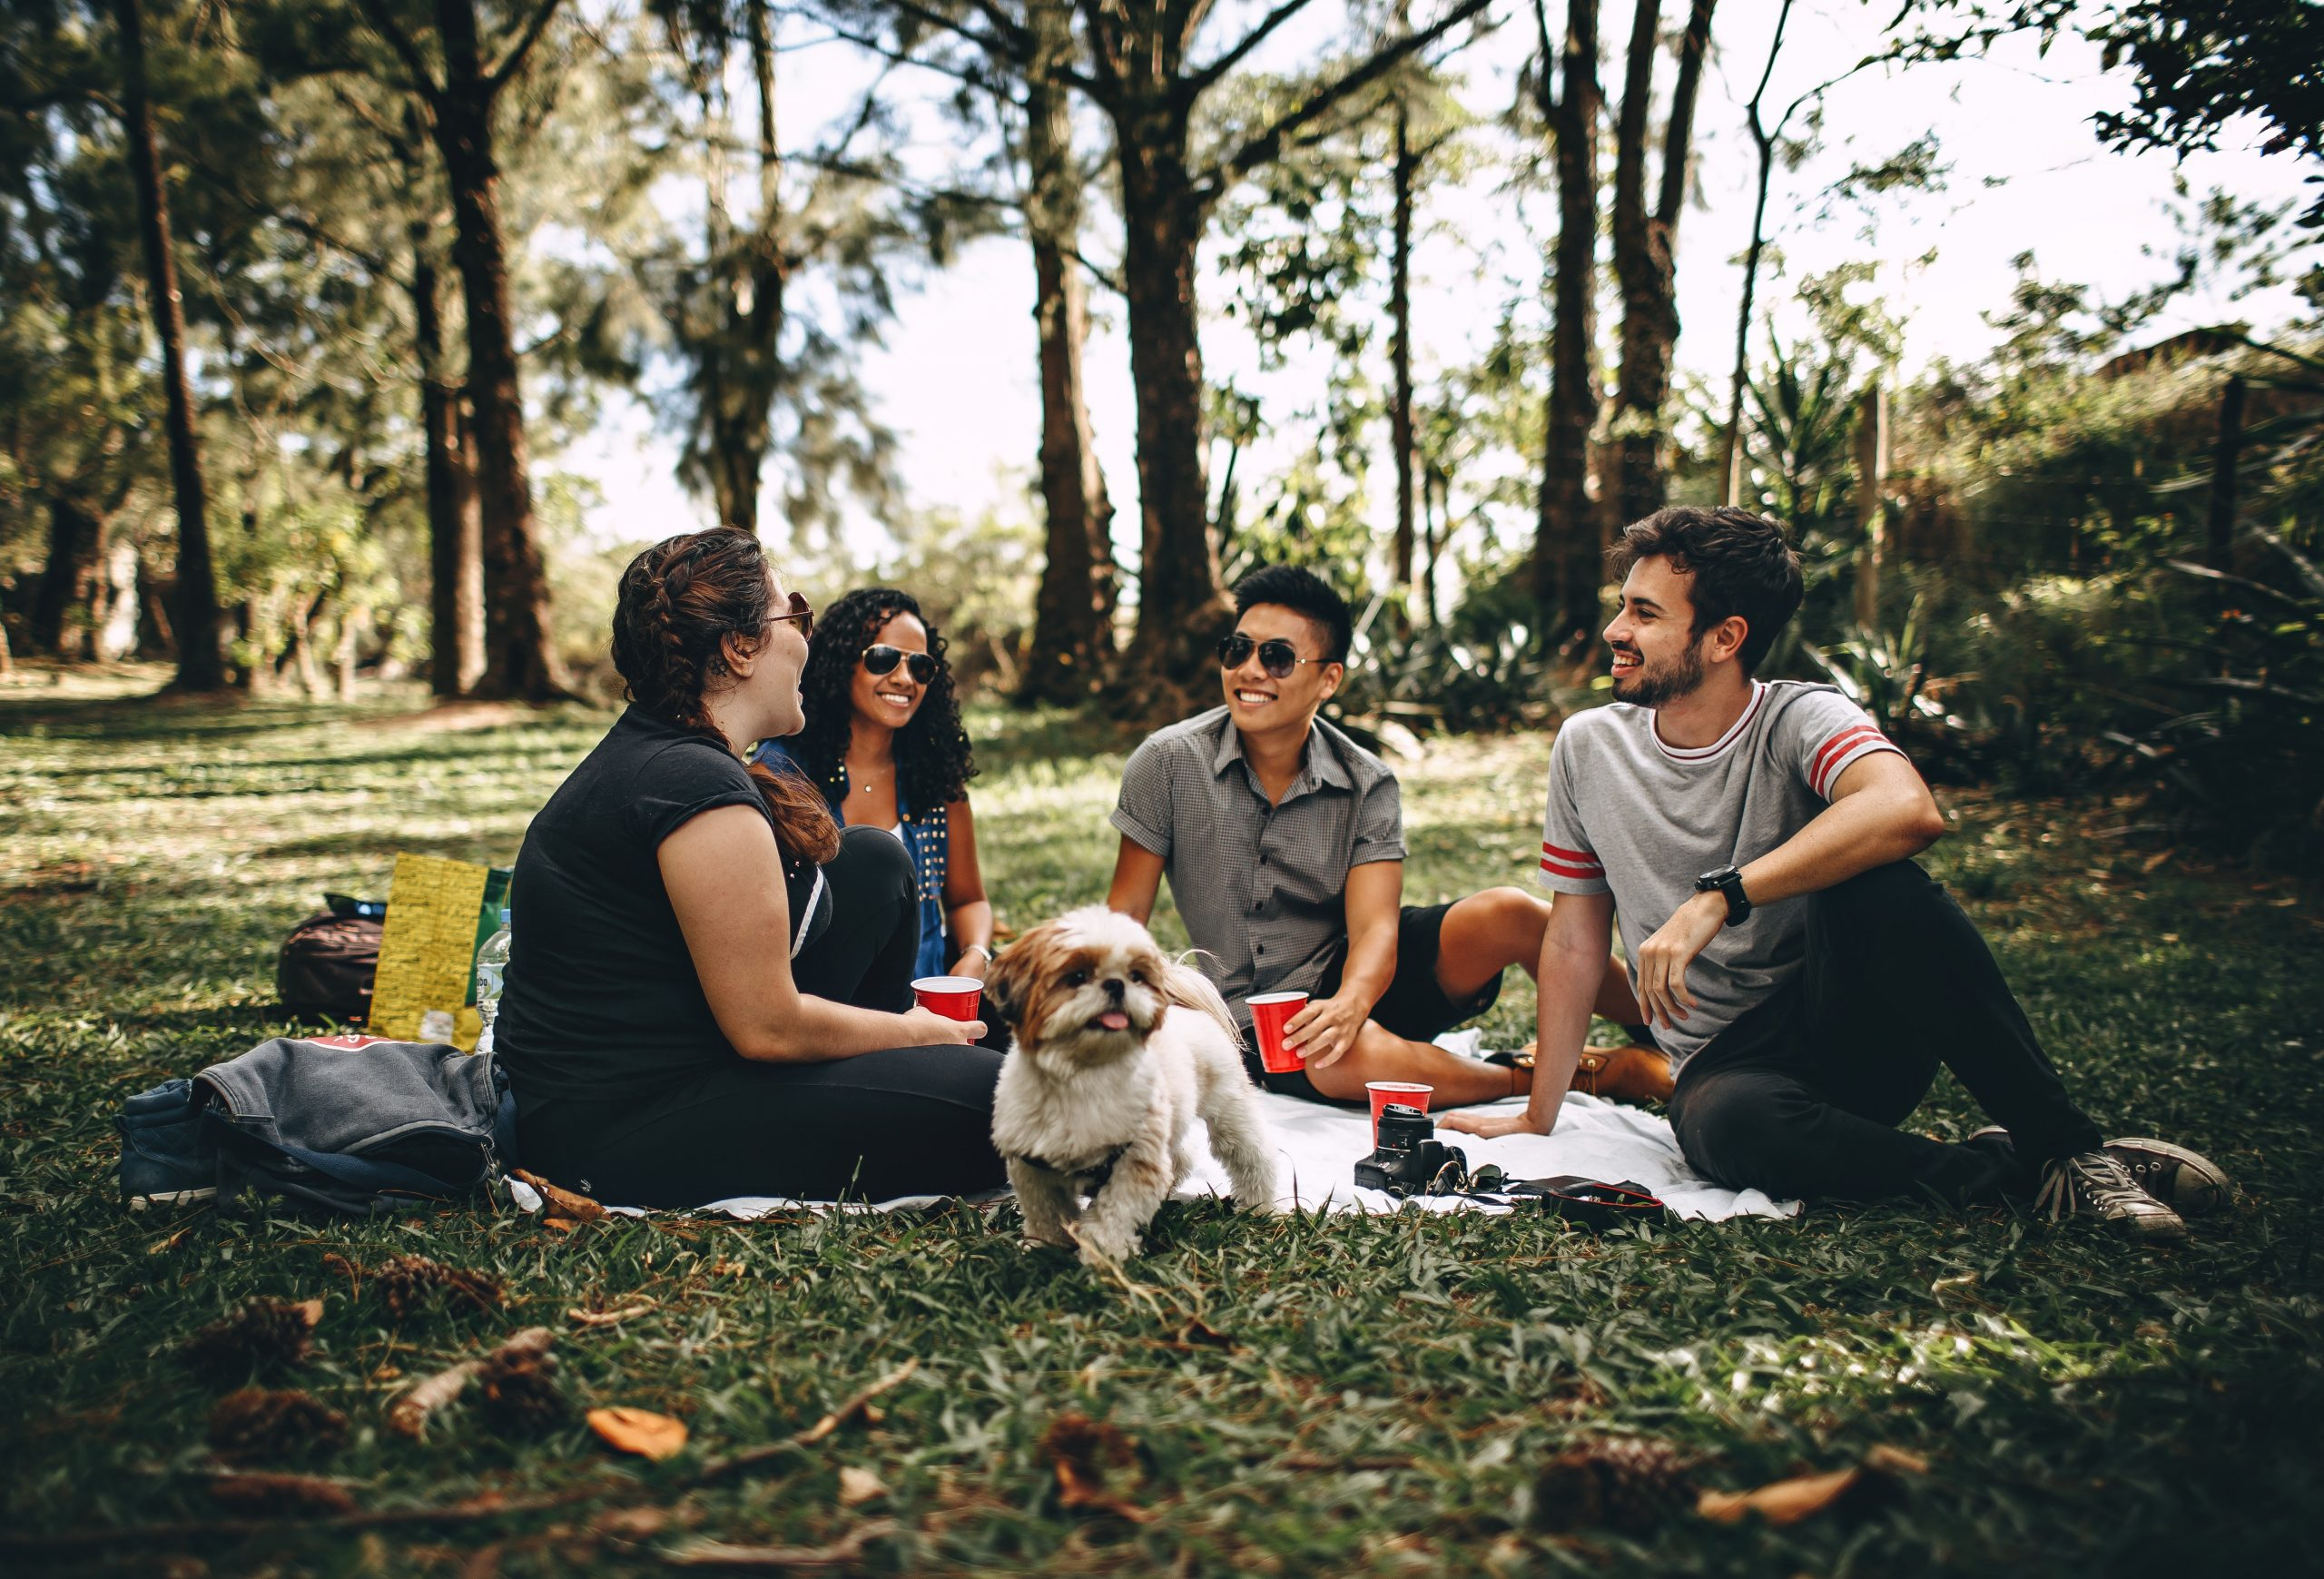 Four people and a dog having a picnic in a sunny park, on the grass.